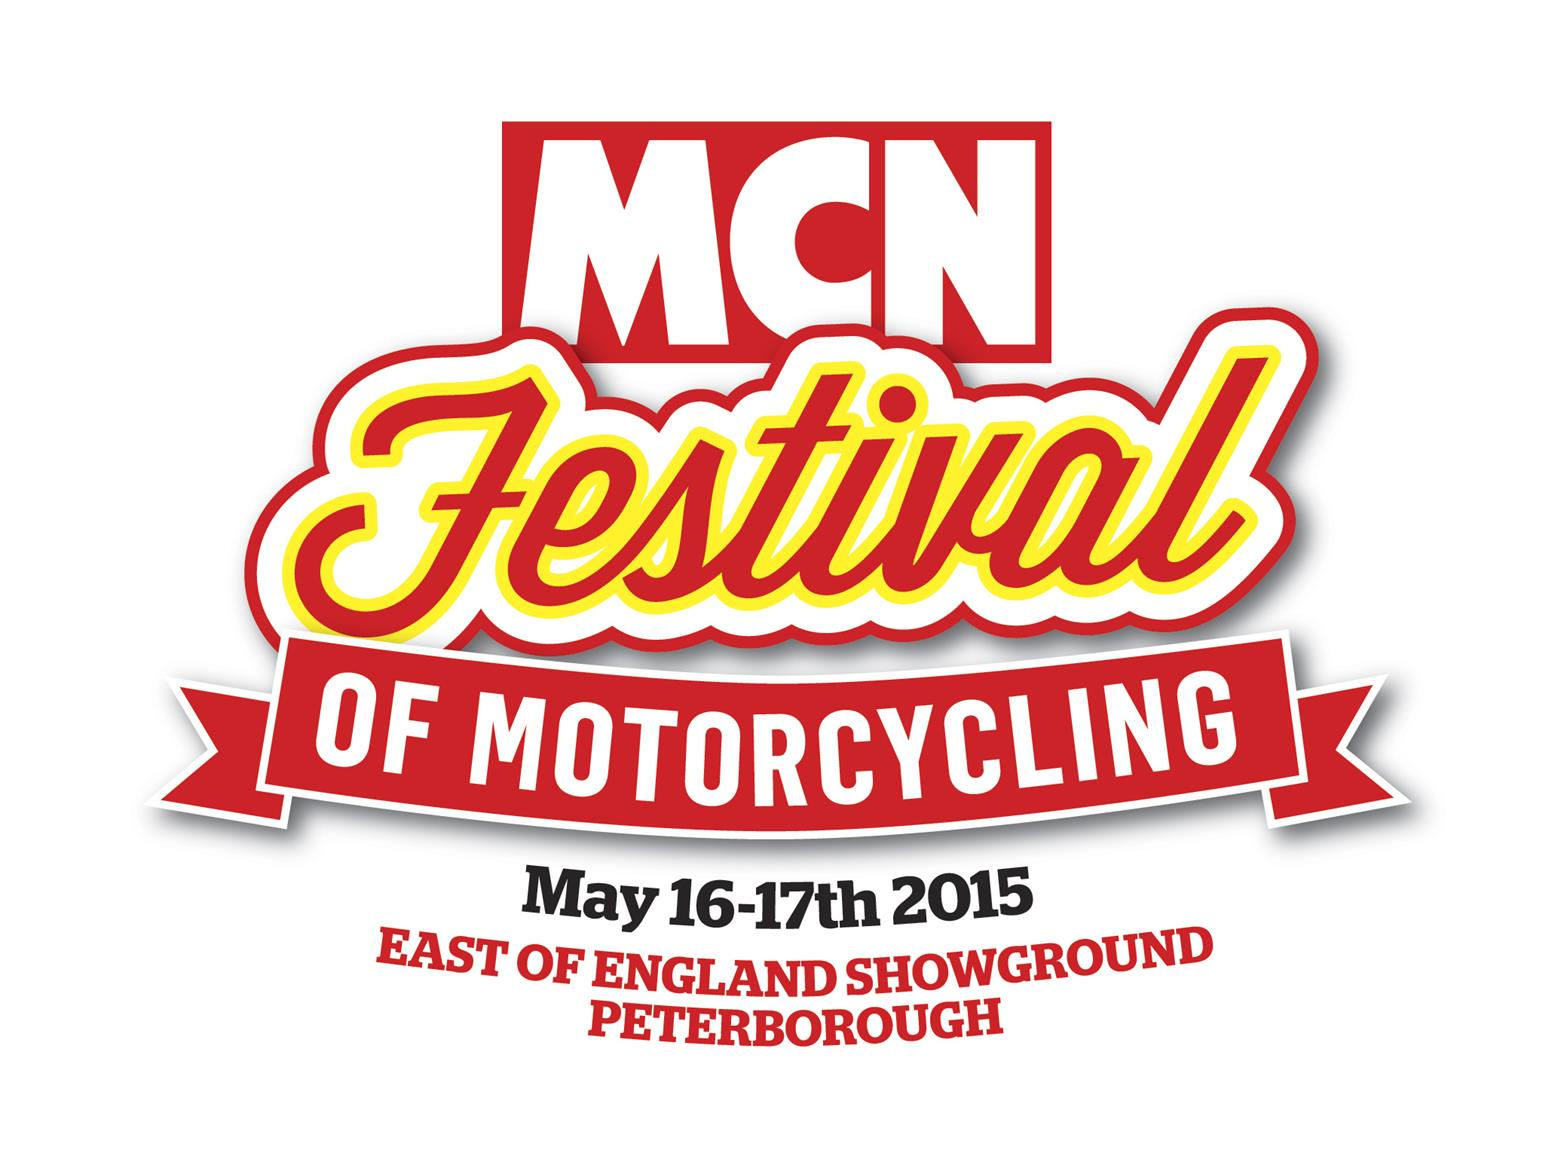 Visit http://www.mcnfestival.com/ to book your test ride slot on the highly acclaimed GP450 - see you there!